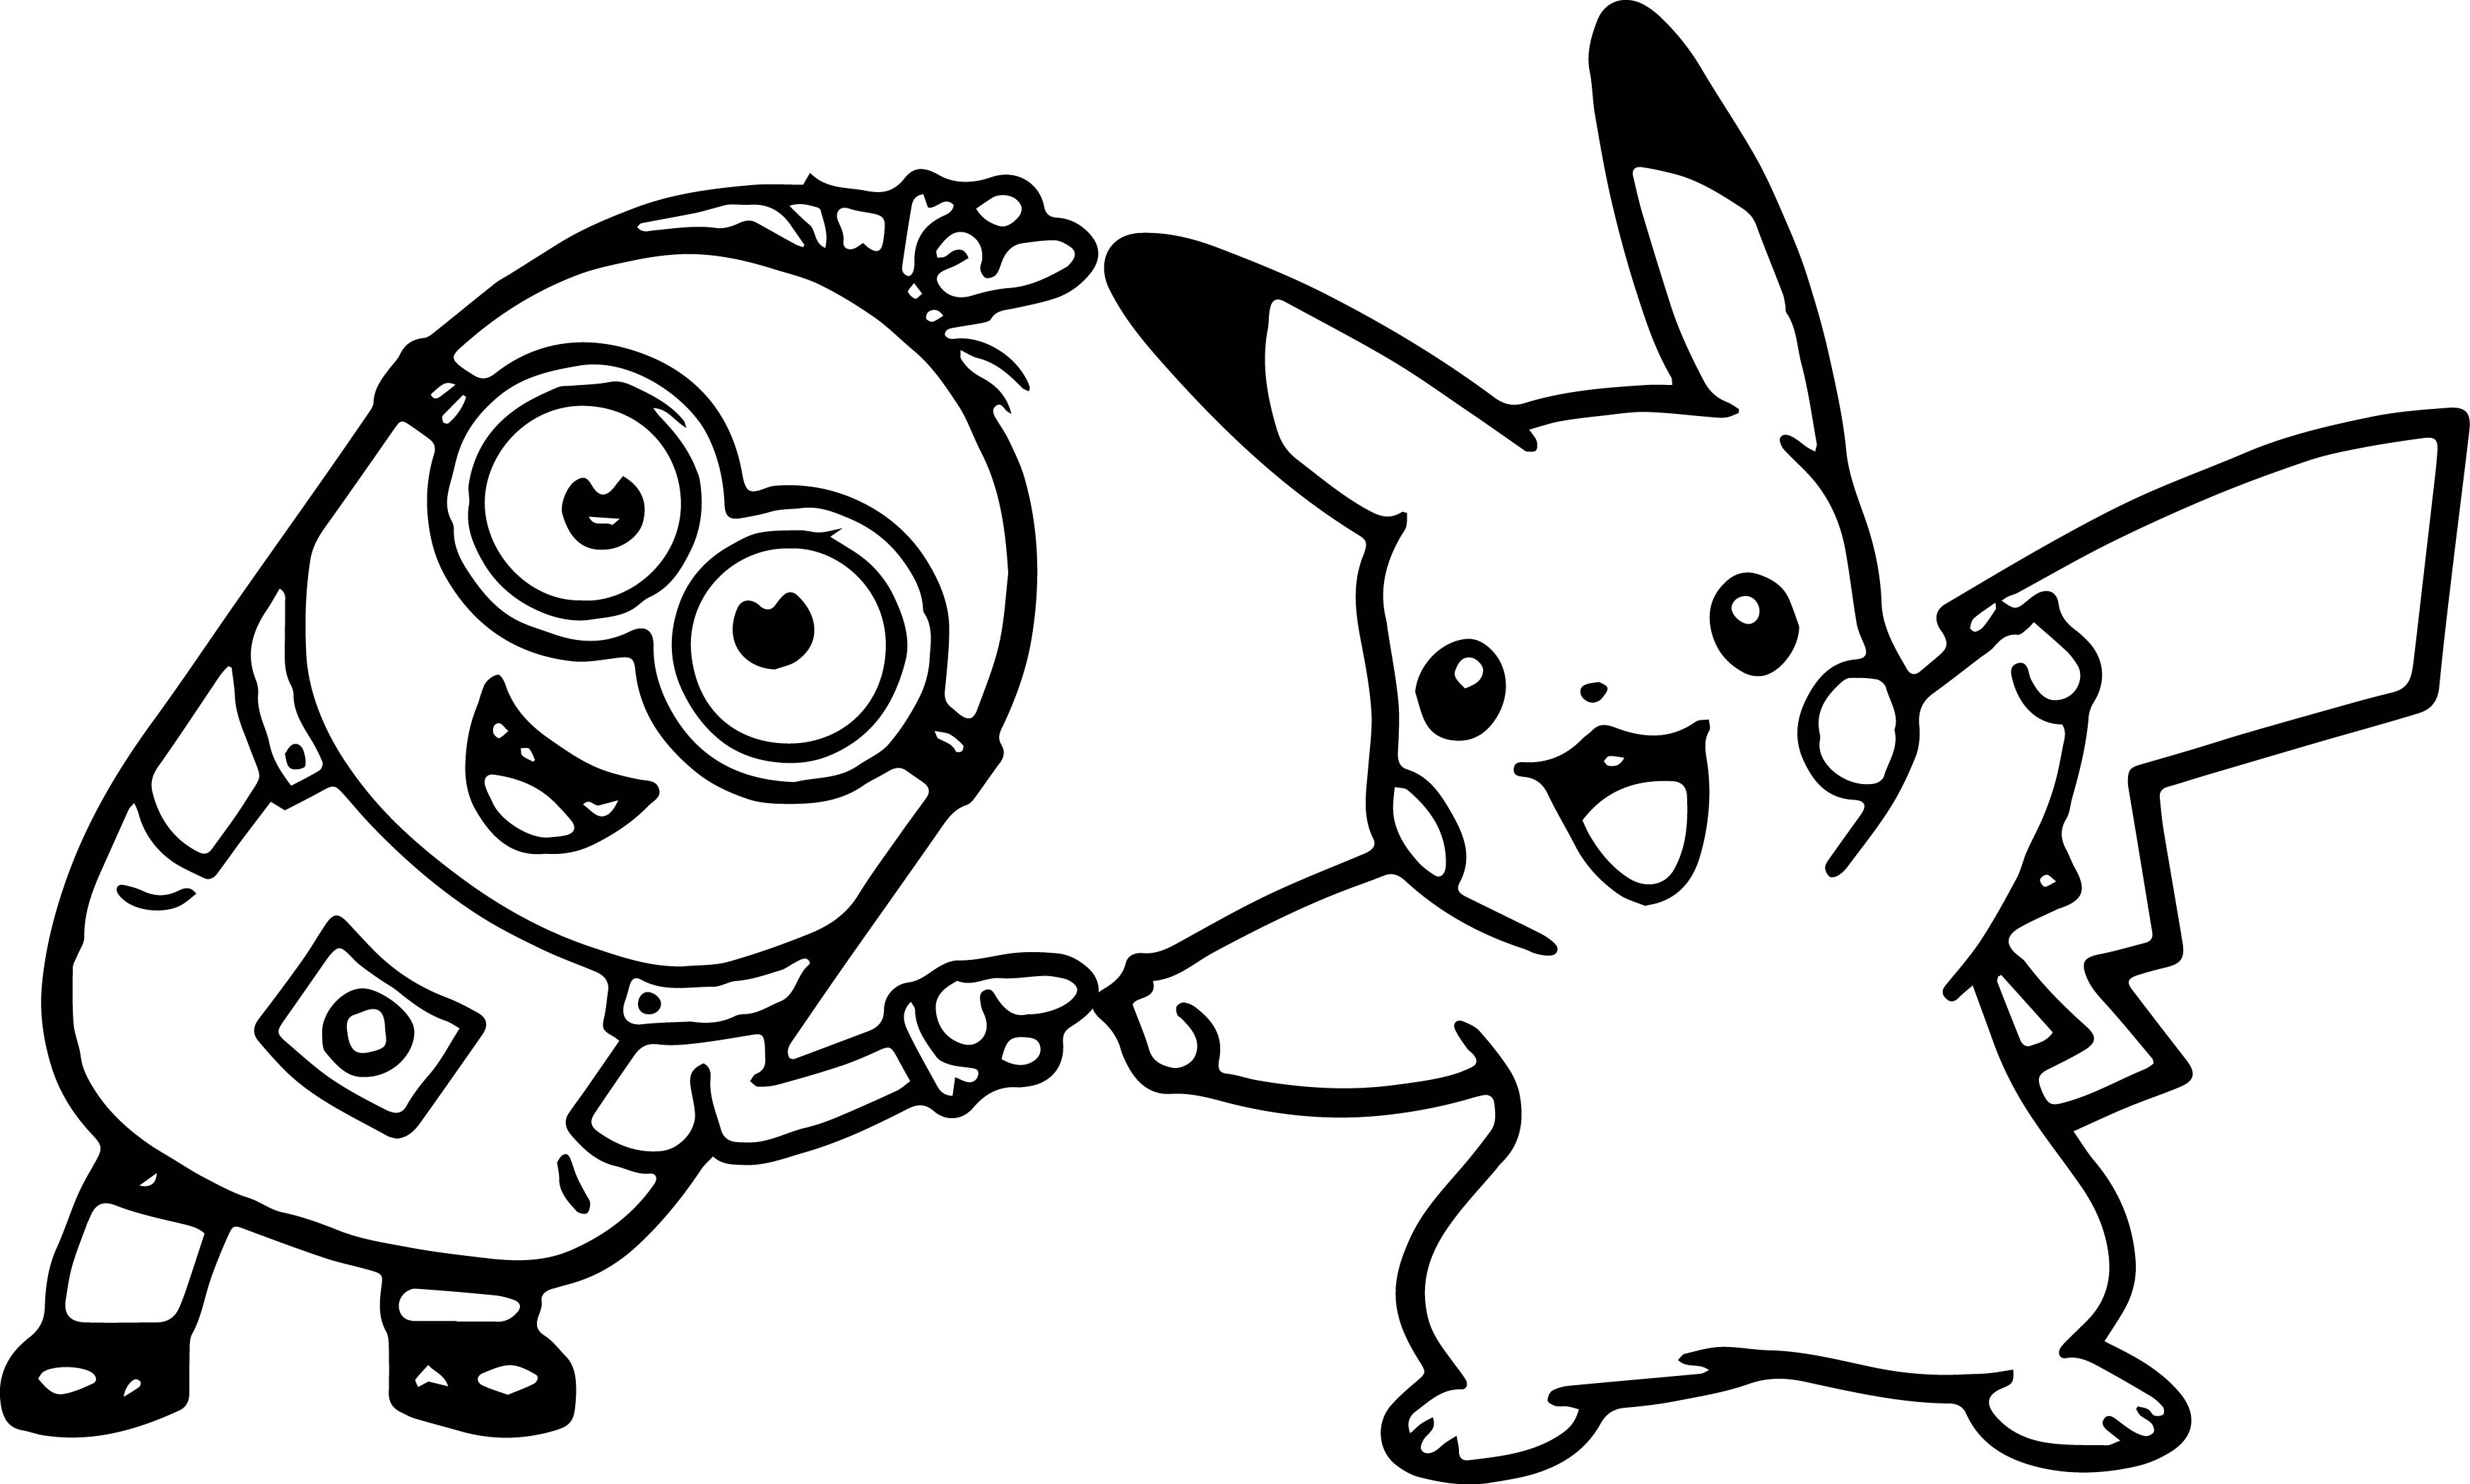 3496x2101 Minion Kevin Golf Dancing With Pikachu Coloring Page